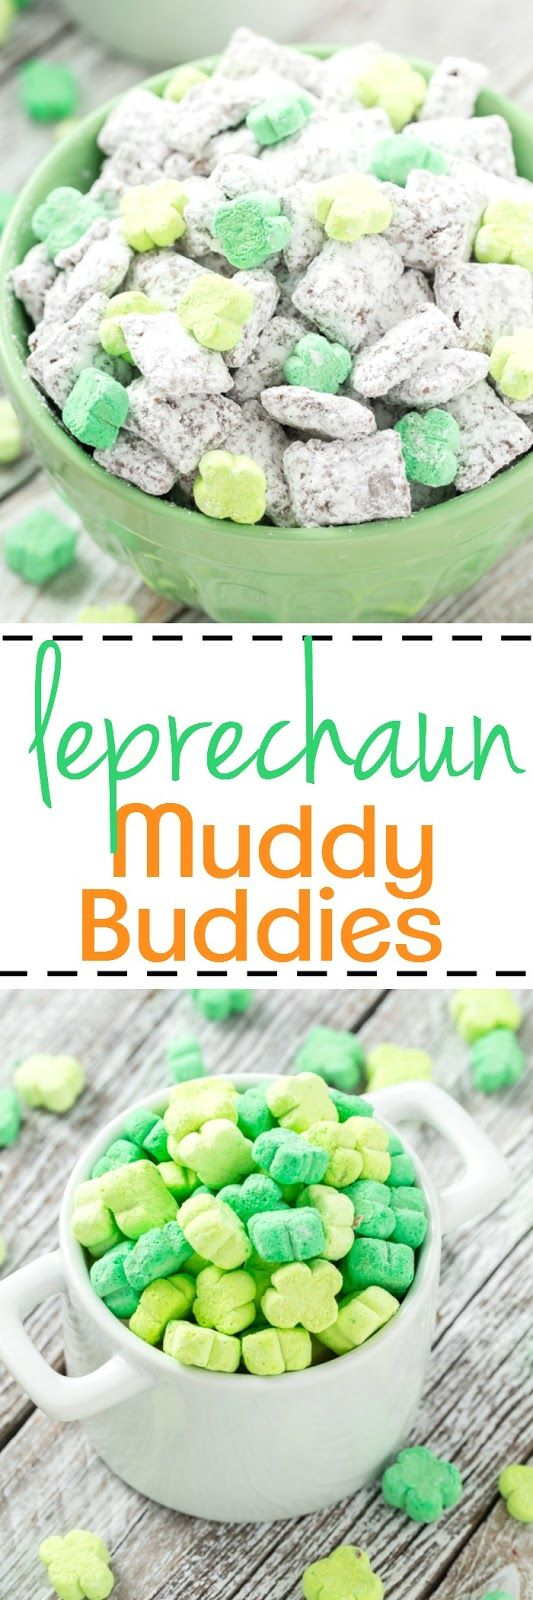 These peanut free Leprechaun Muddy Buddies are magically delicious with mini shamrock marshmallows.  Sure to be a hit for young and old alike! #muddybuddies #chexmix